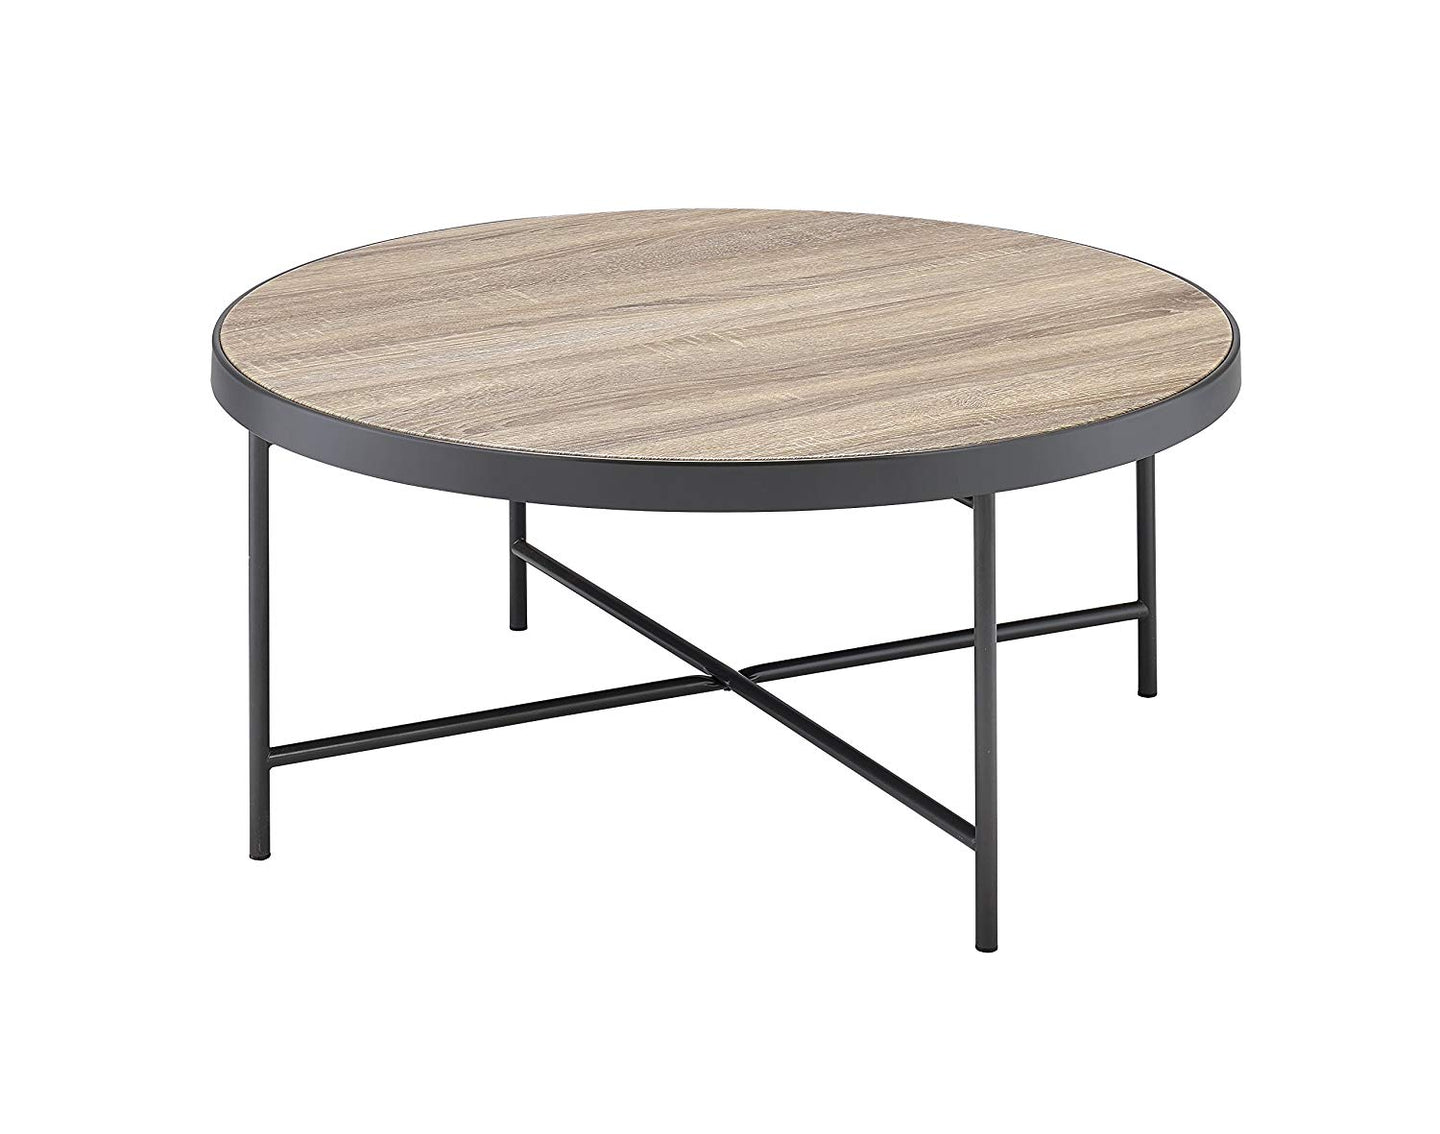 Acme 81735 Bage Weathered Gray Oak Finish Coffee Table